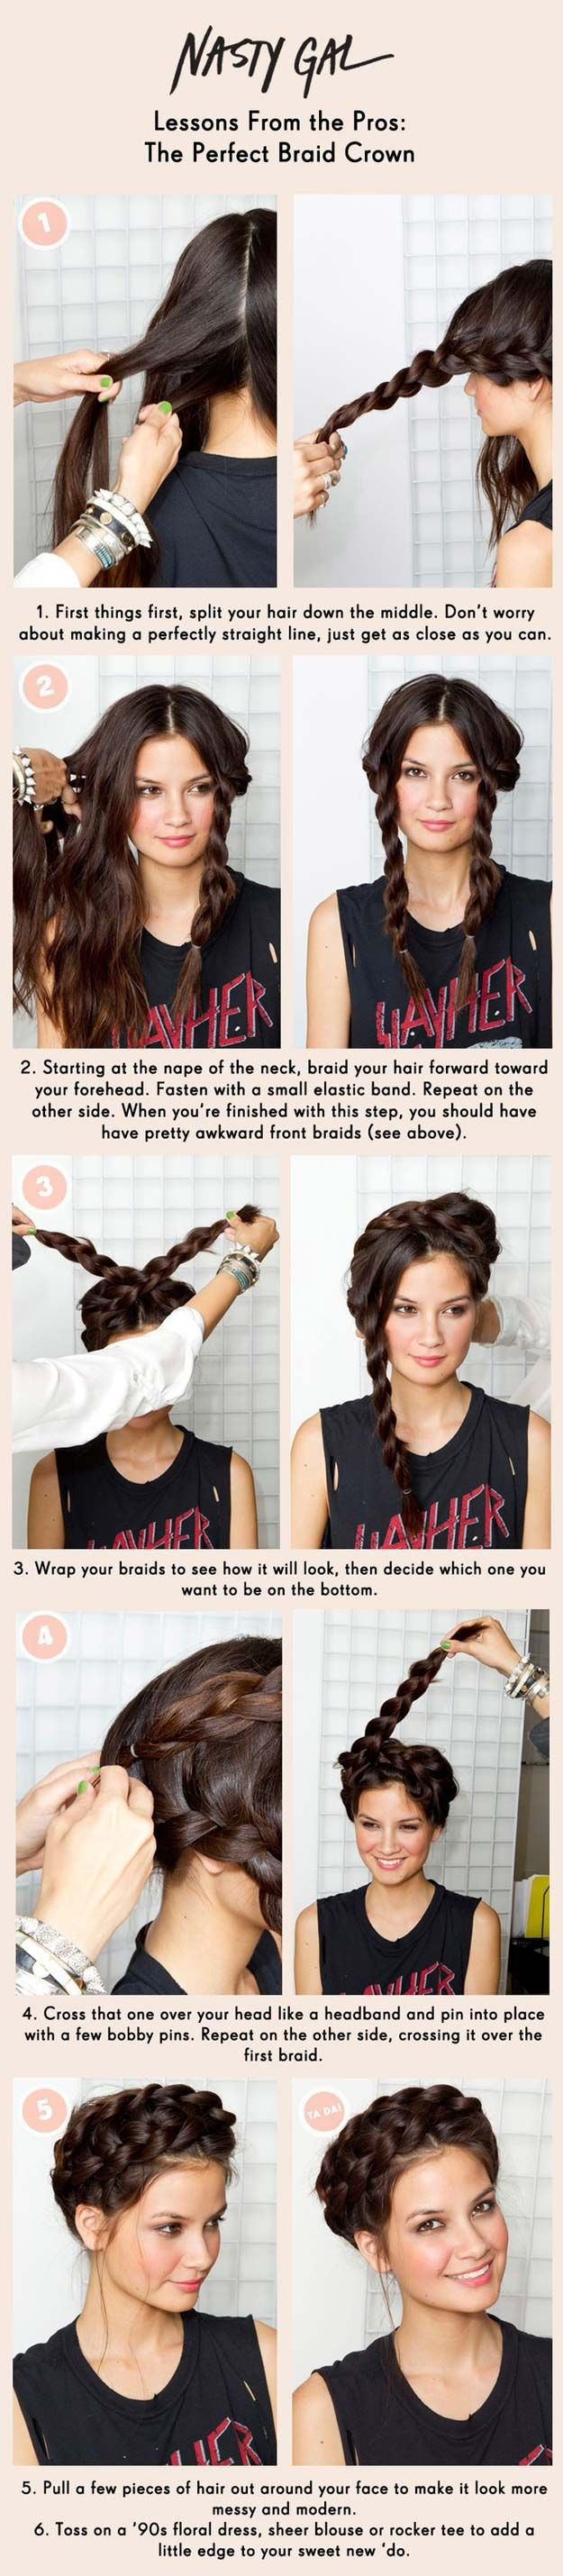 Cool and Easy DIY Hairstyles - Braid Crown - Quick and Easy Ideas for Back to School Styles for Medium, Short and Long Hair - Fun Tips and Best Step by Step Tutorials for Teens, Prom, Weddings, Special Occasions and Work. Up dos, Braids, Top Knots and Buns, Super Summer Looks http://diyprojectsforteens.com/diy-cool-easy-hairstyles